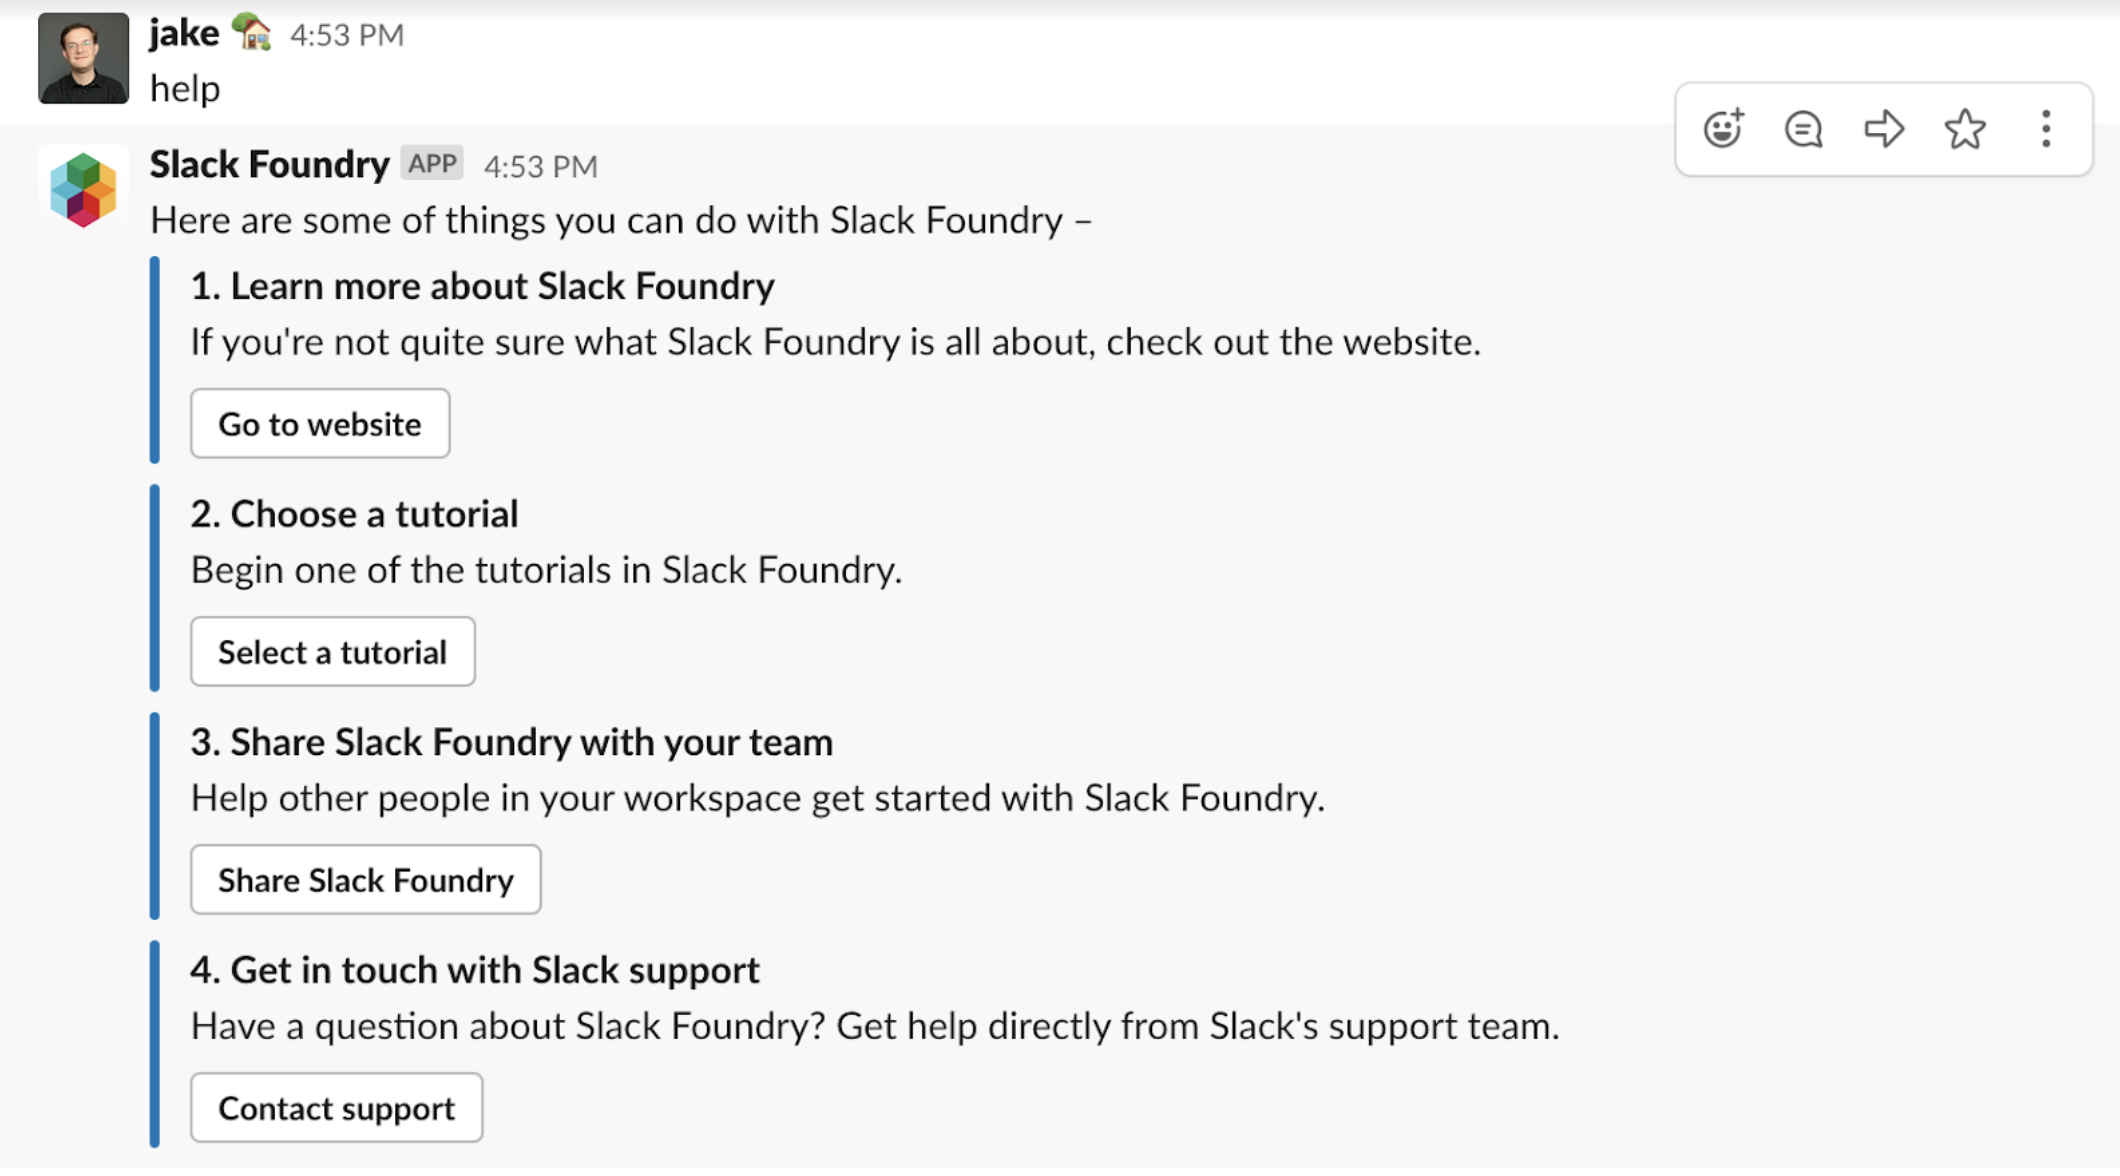 Example help message from an app in Slack client